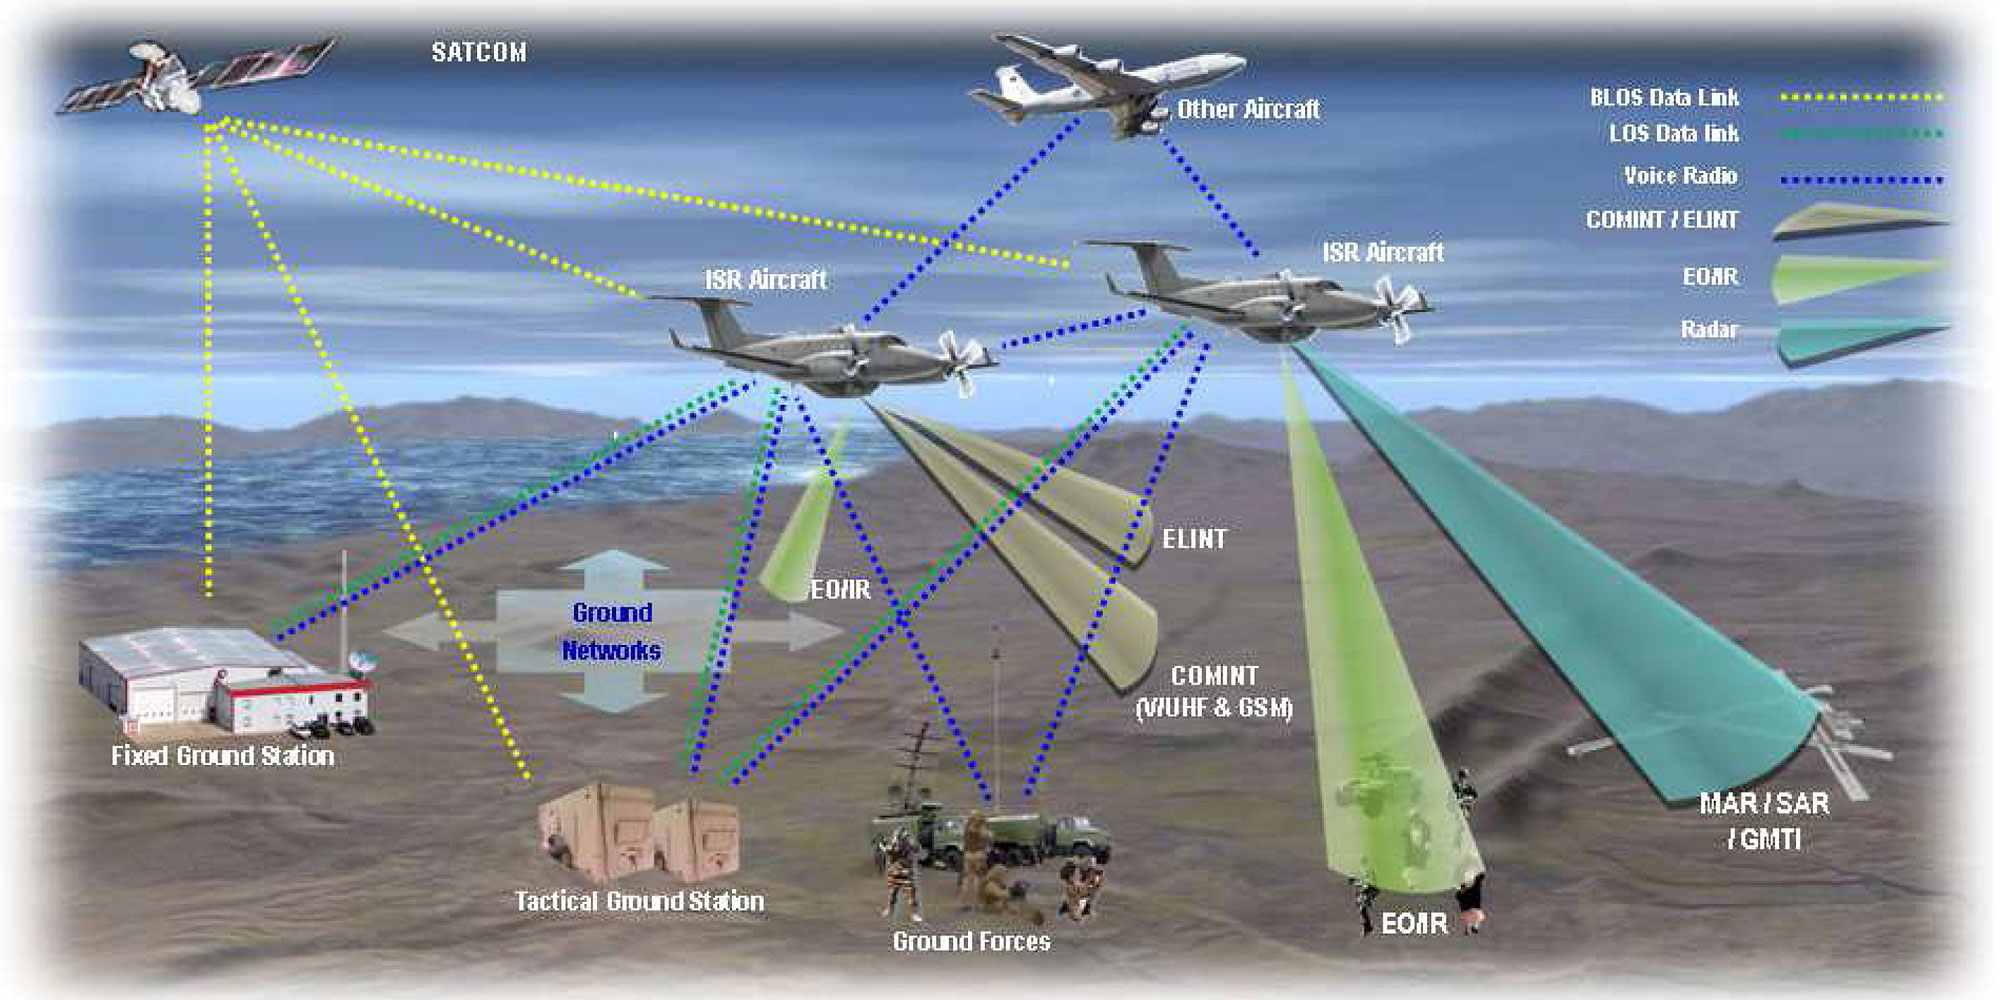 russian military accidents with Raytheon Uk Develops New Isr Solutions on Kenyan Rangers Spot Missing Ugandan Helicopters as well Guardian Fully Bricked Battered in addition Raytheon Uk Develops New Isr Solutions additionally 2012 Kazakhstan Antonov An 72 crash together with 176549 Malaysian Plane Crash In Ukraine 295 Dead.